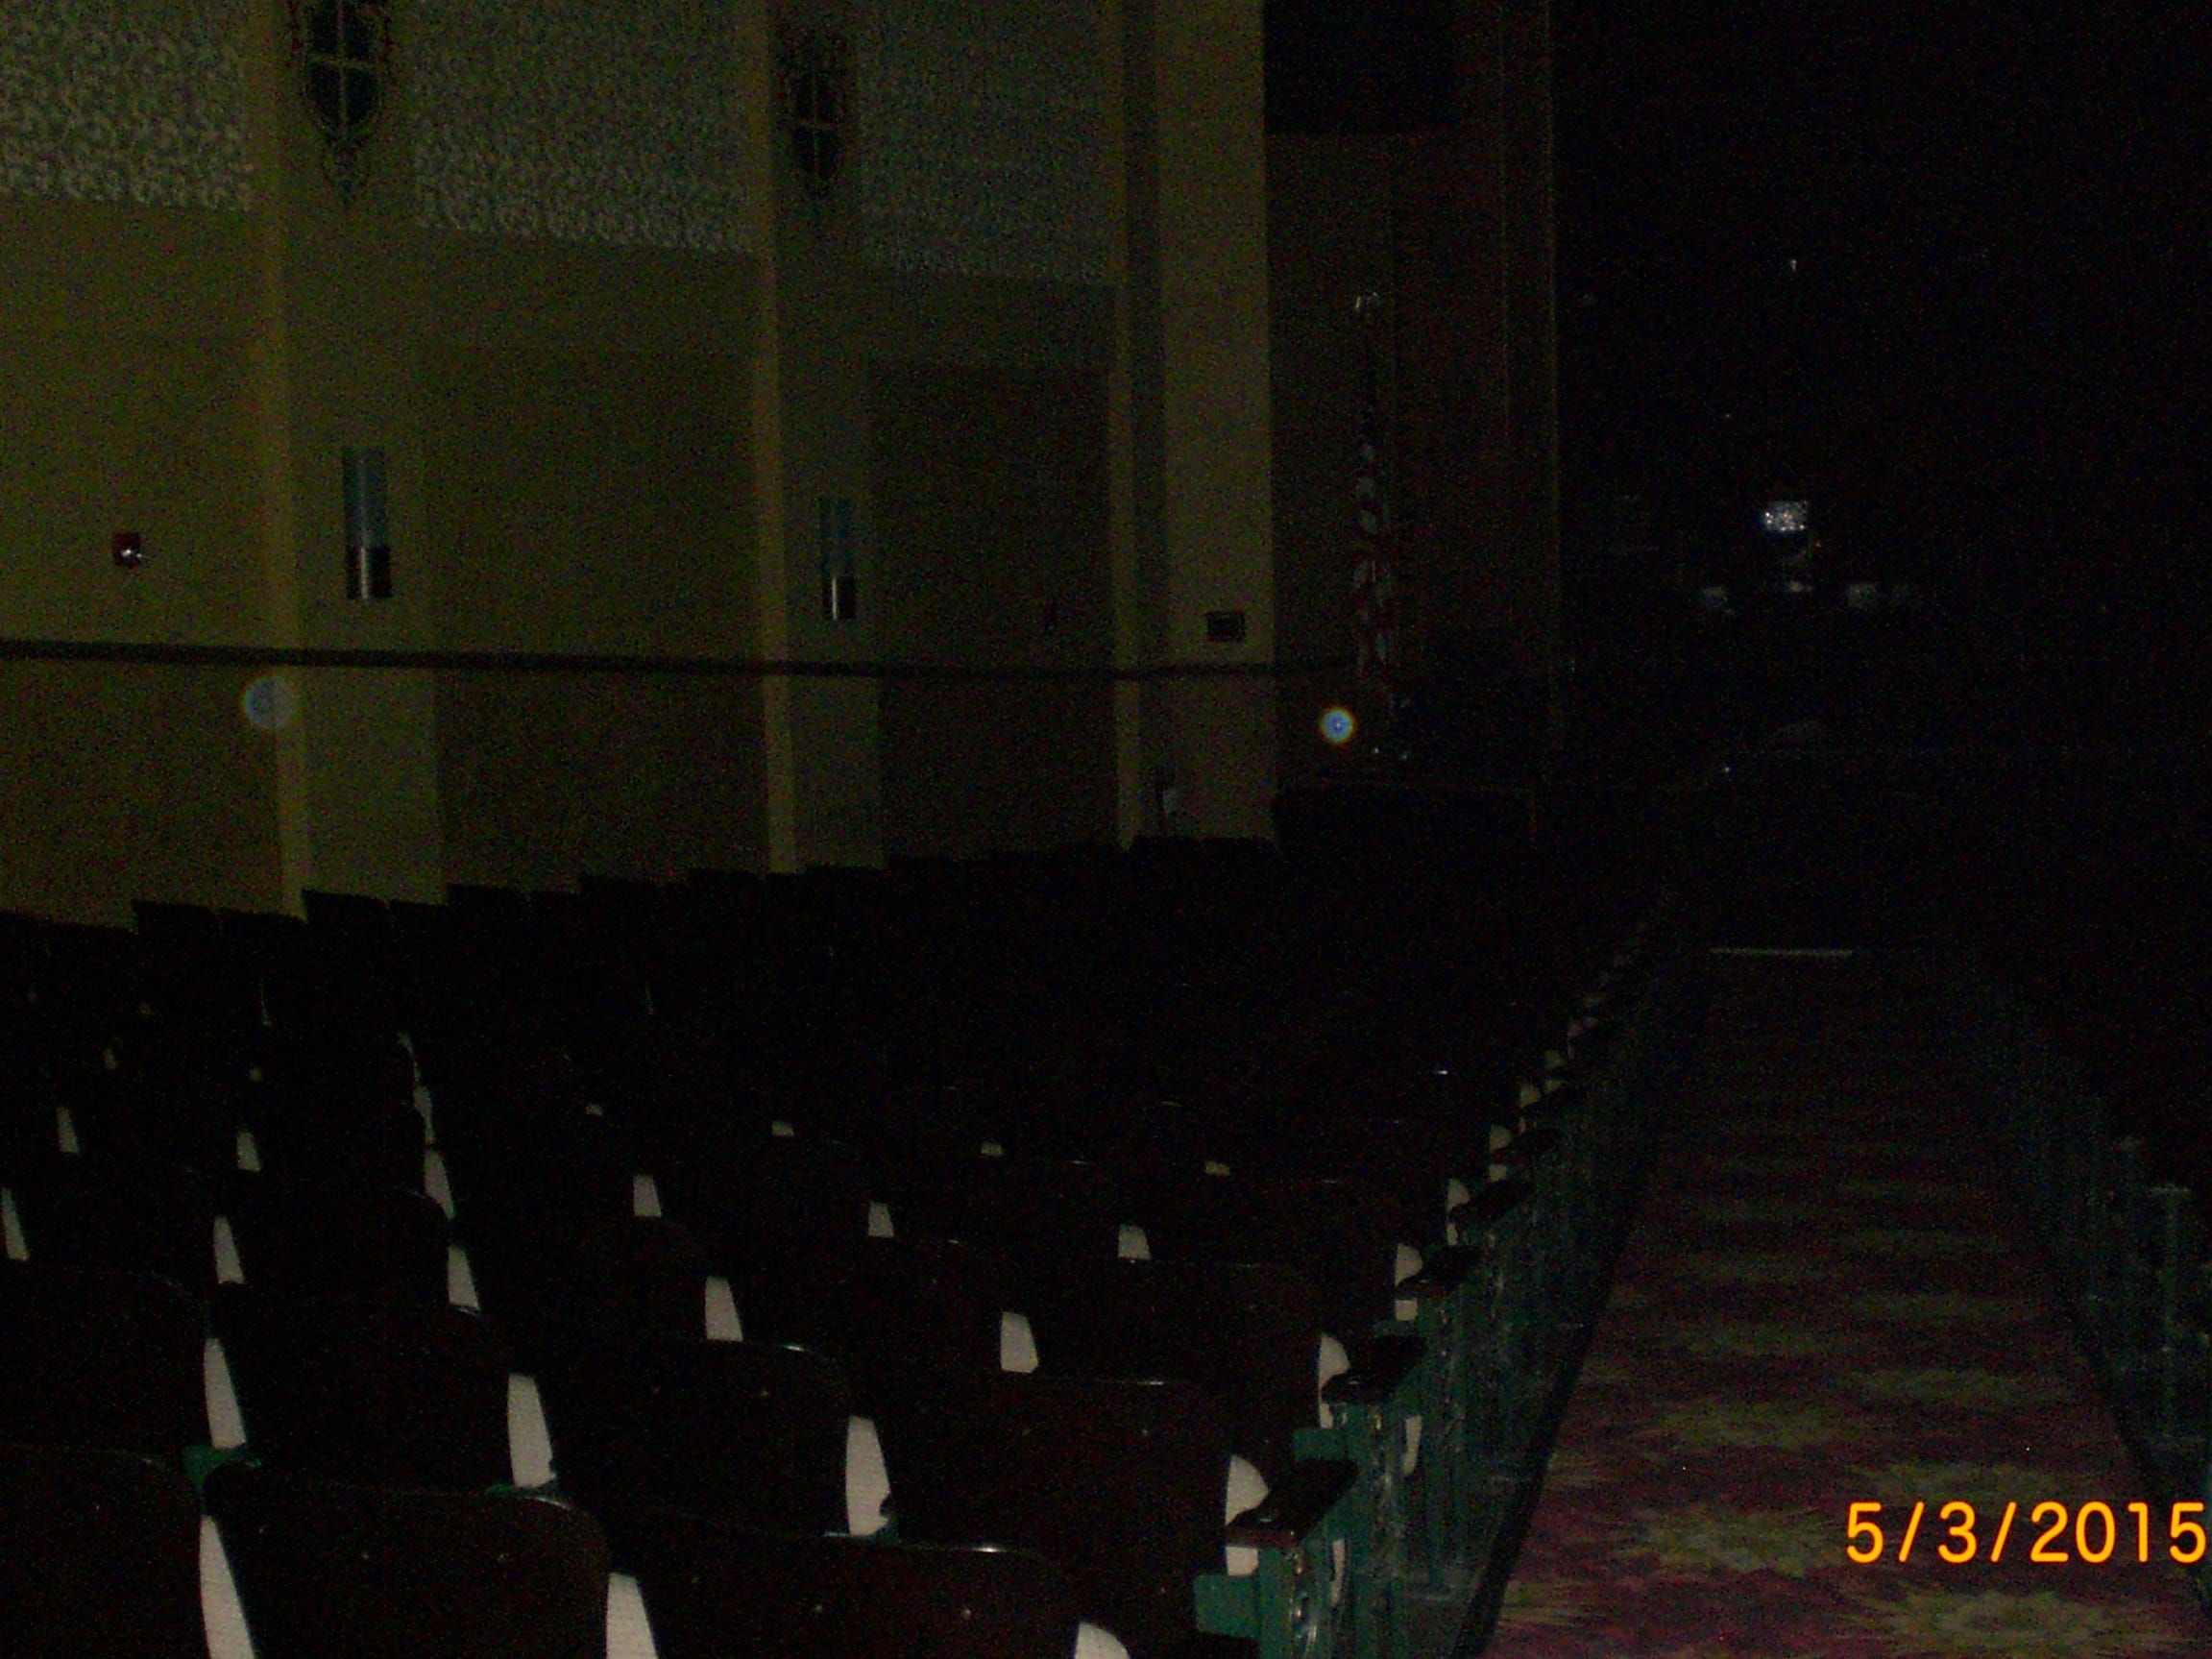 Paranormal activity meets history on the Indian River Hauntings ghost tours in Fellsmere, Vero Beach and Sebastian. This May 2015 photo shows orbs inside the Sunrise Theatre in downtown Fort Pierce.